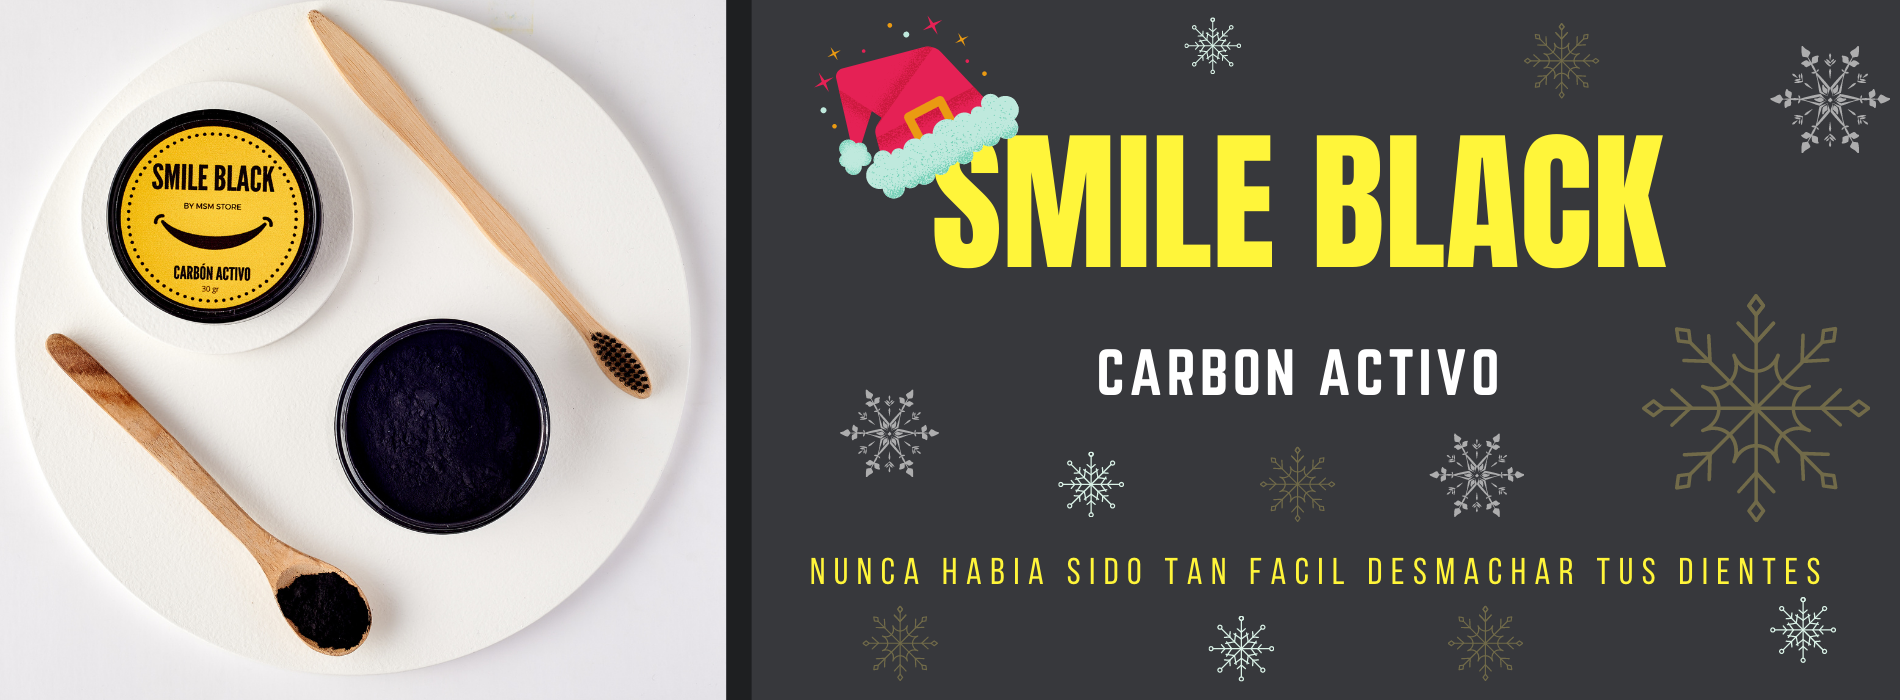 https://www.msmstore.com.co/item-carbon_activo_smile_black-313520